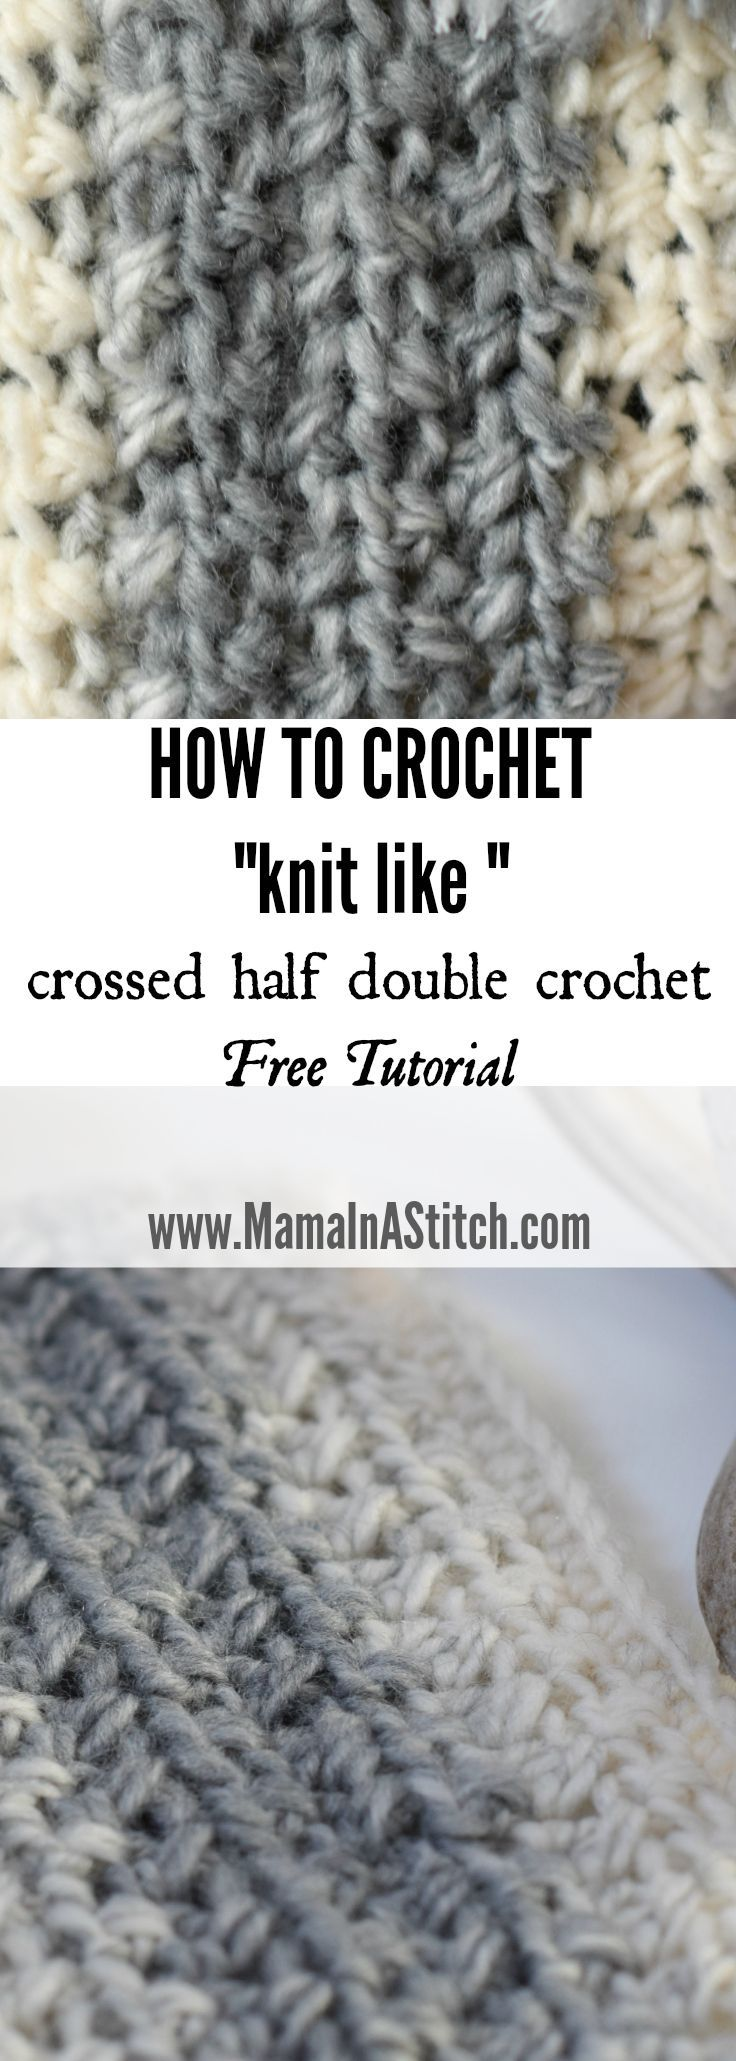 Pretty, simple crochet stitch tutorial and how to. Crossed Half Double Crochet Stitch Tutorial that creates an almost knit look via @MamaInAStitch